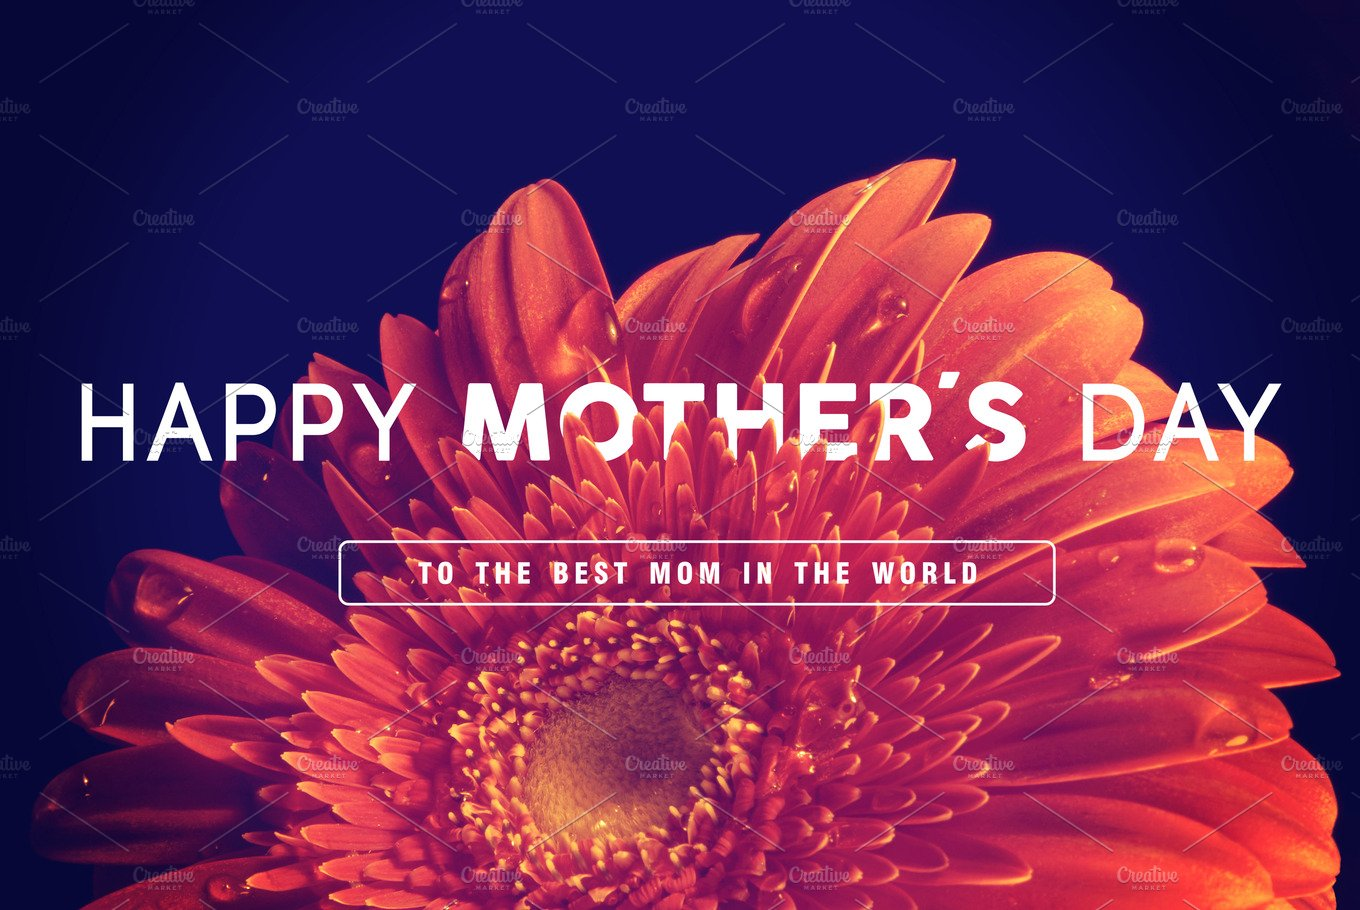 Happy mothers day greeting card people images creative market m4hsunfo